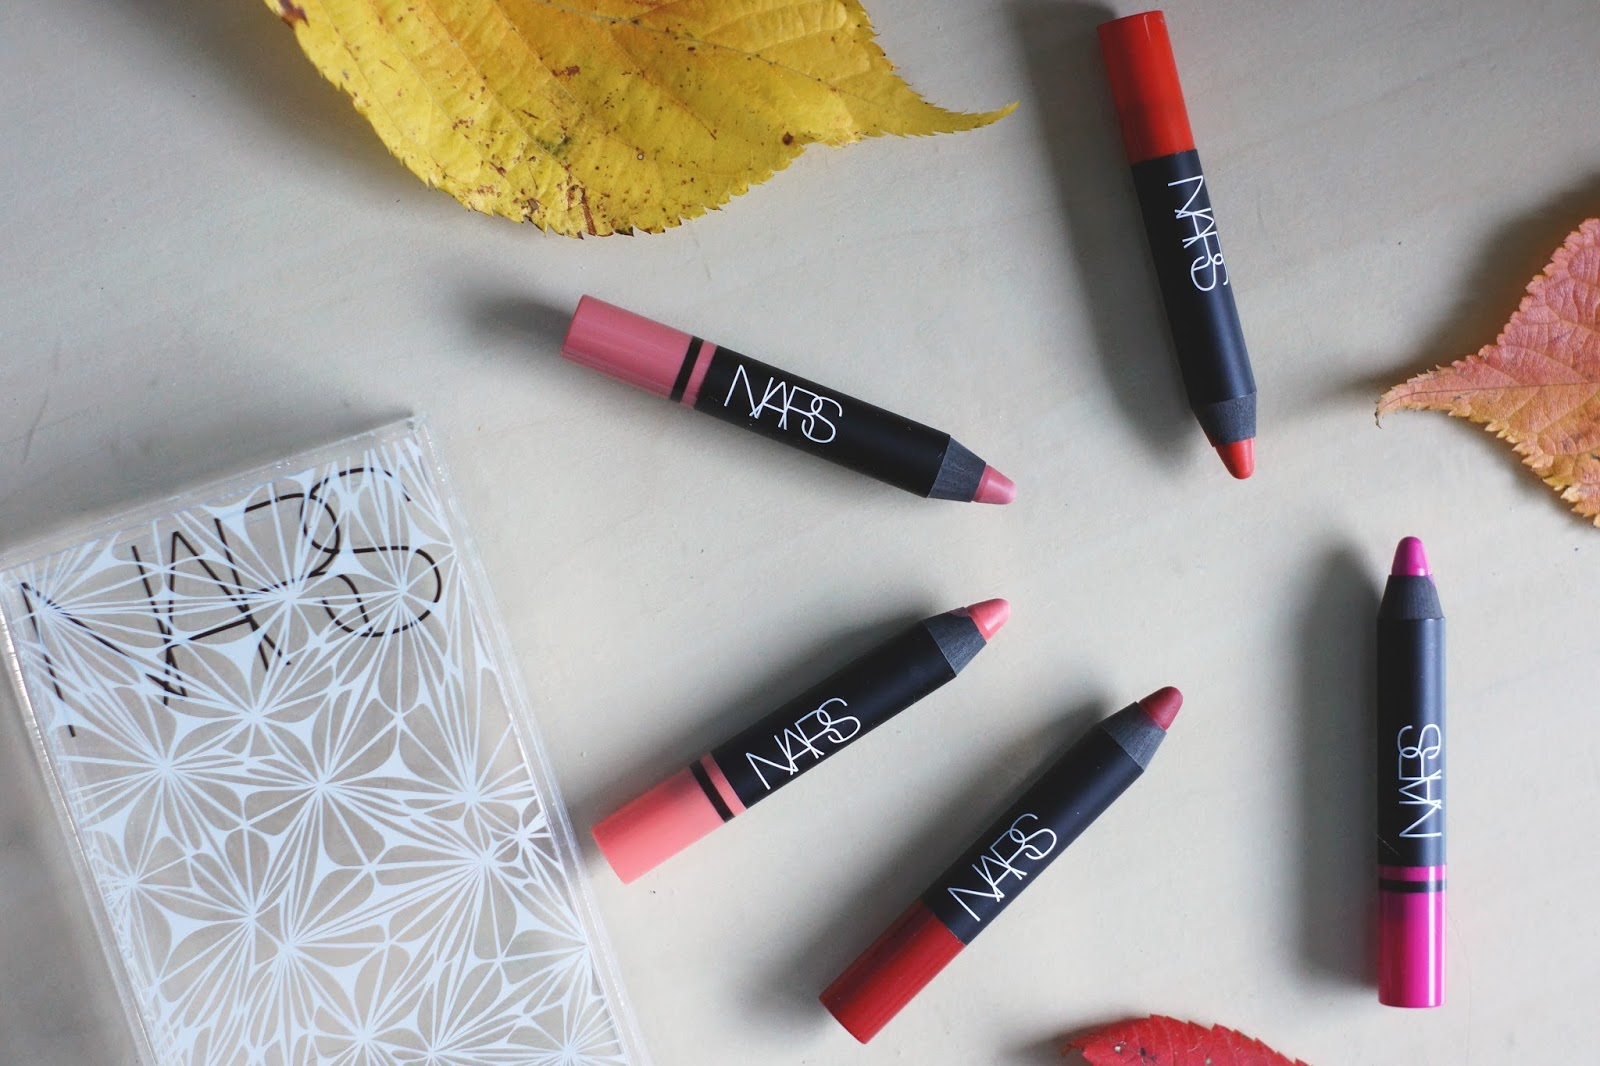 NARS Holiday 2014 Digital World Lip Pencil Coffret